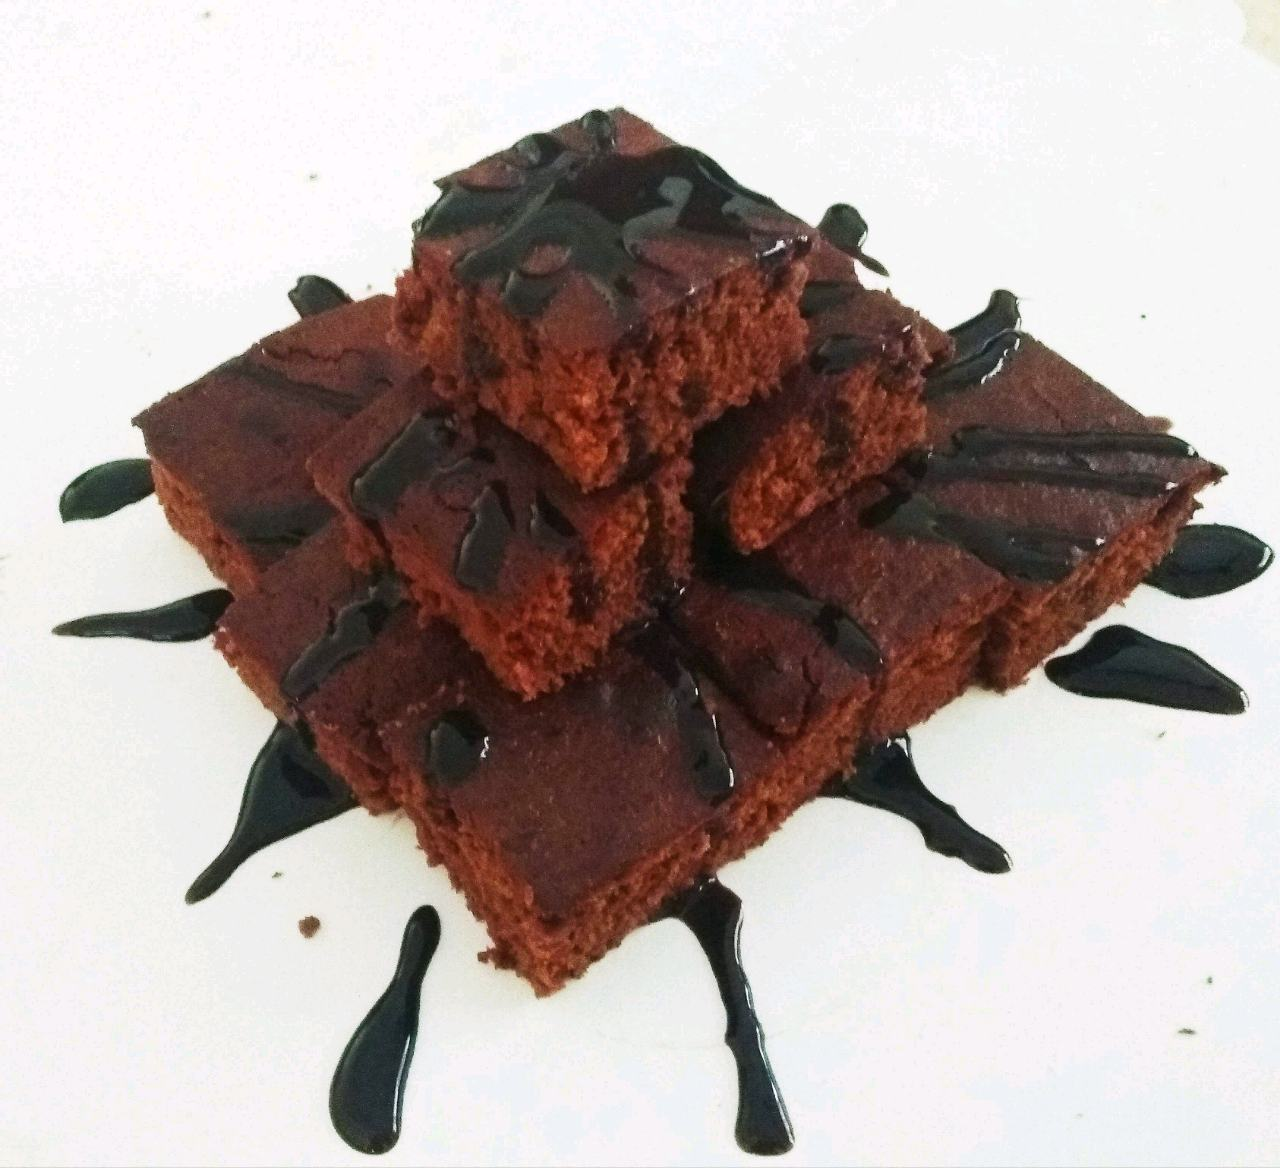 3 Ingredient Brownie